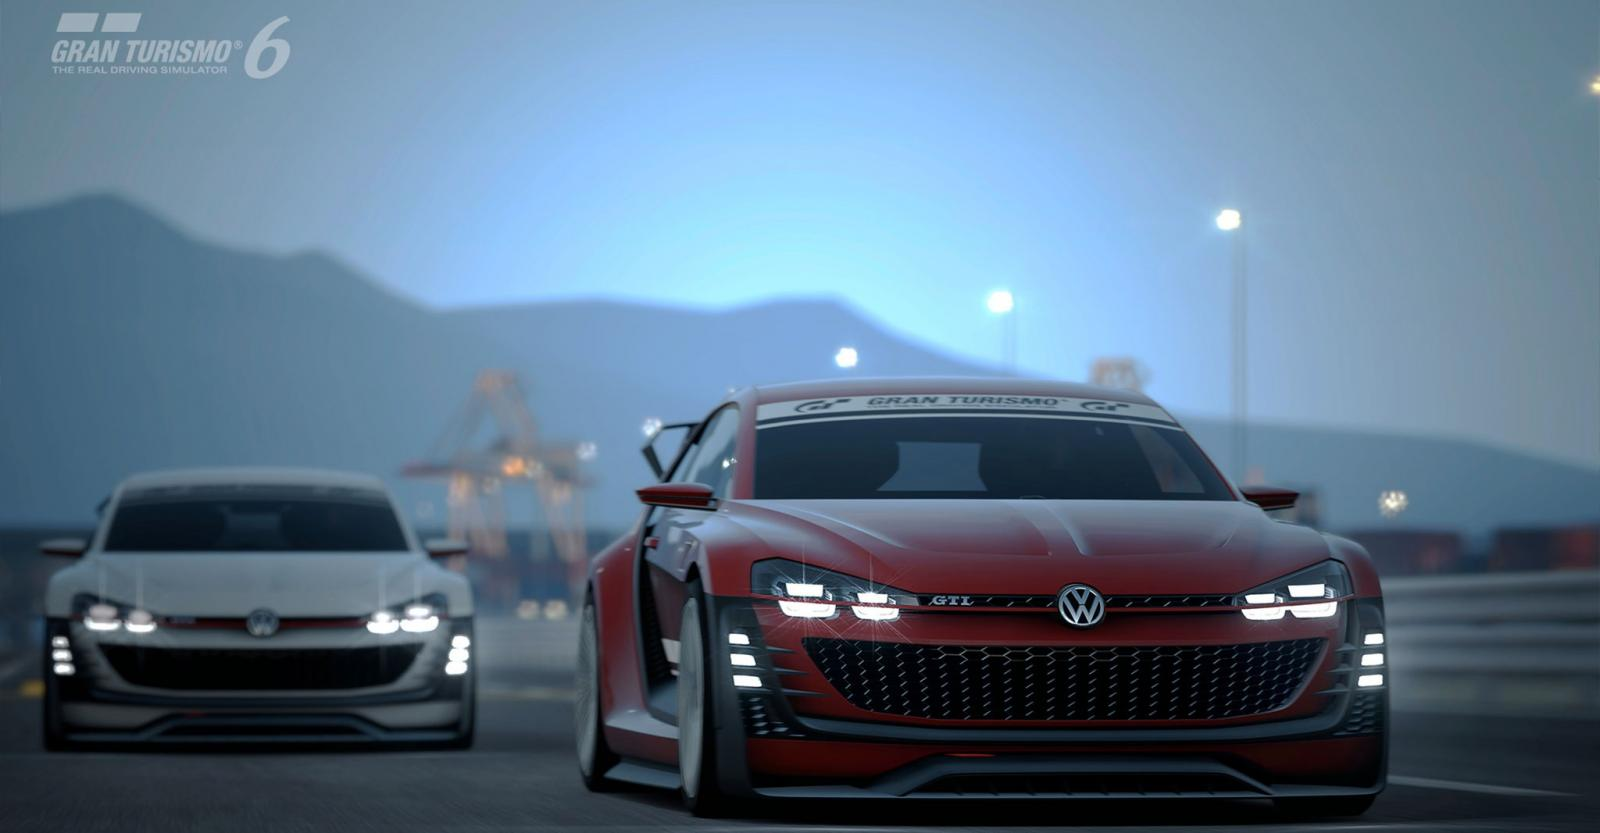 Volkswagen Unveils New GTI Supersport Vision Gran Turismo for GT6 - autoevolution